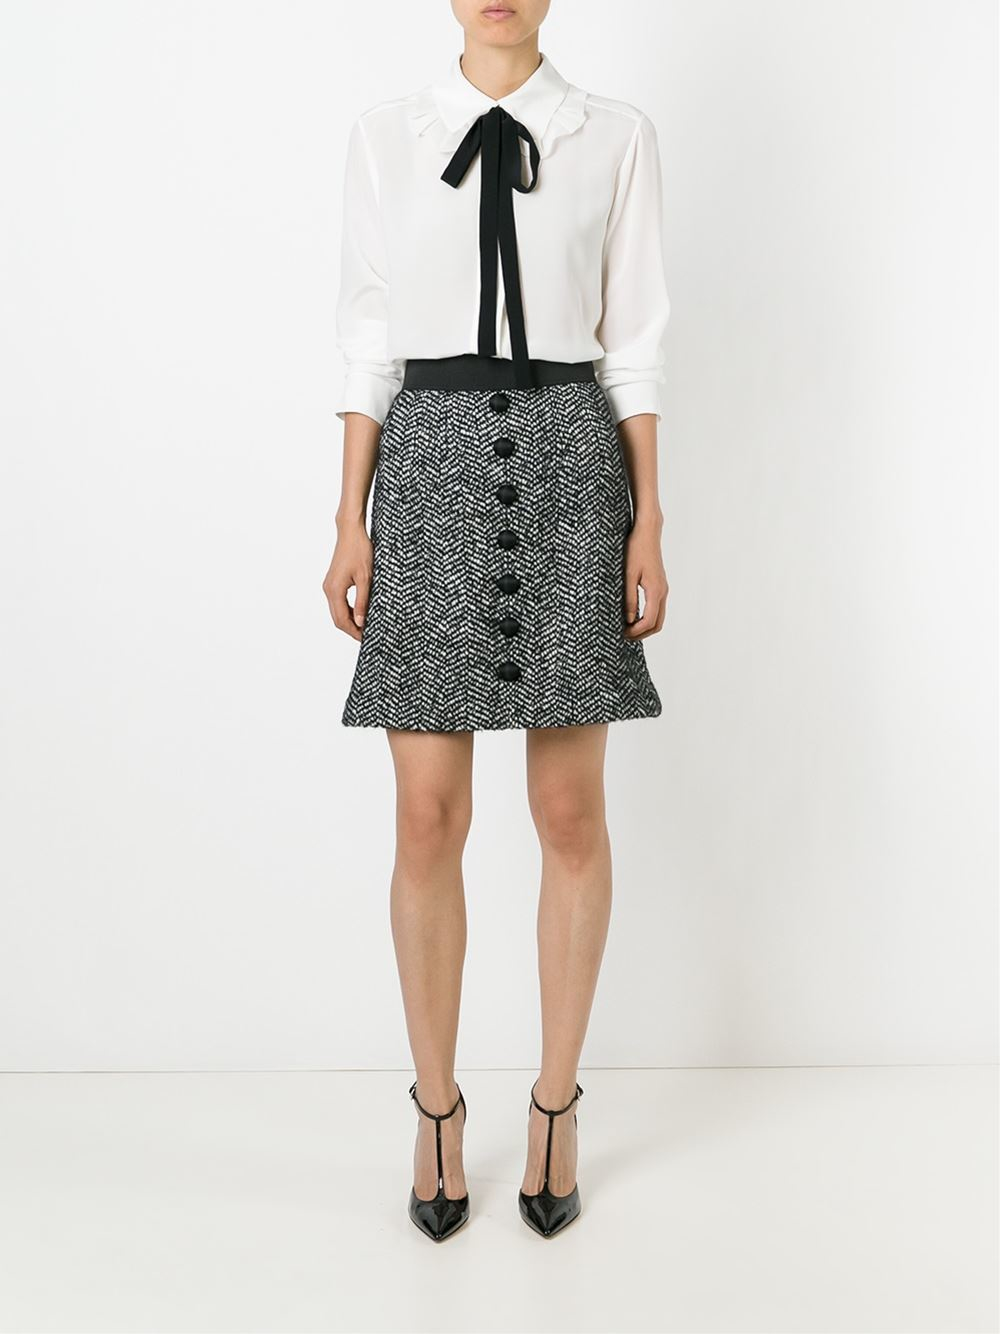 ad33d0f9 Dolce Gabbana Buttoned Top   The Art of Mike Mignola